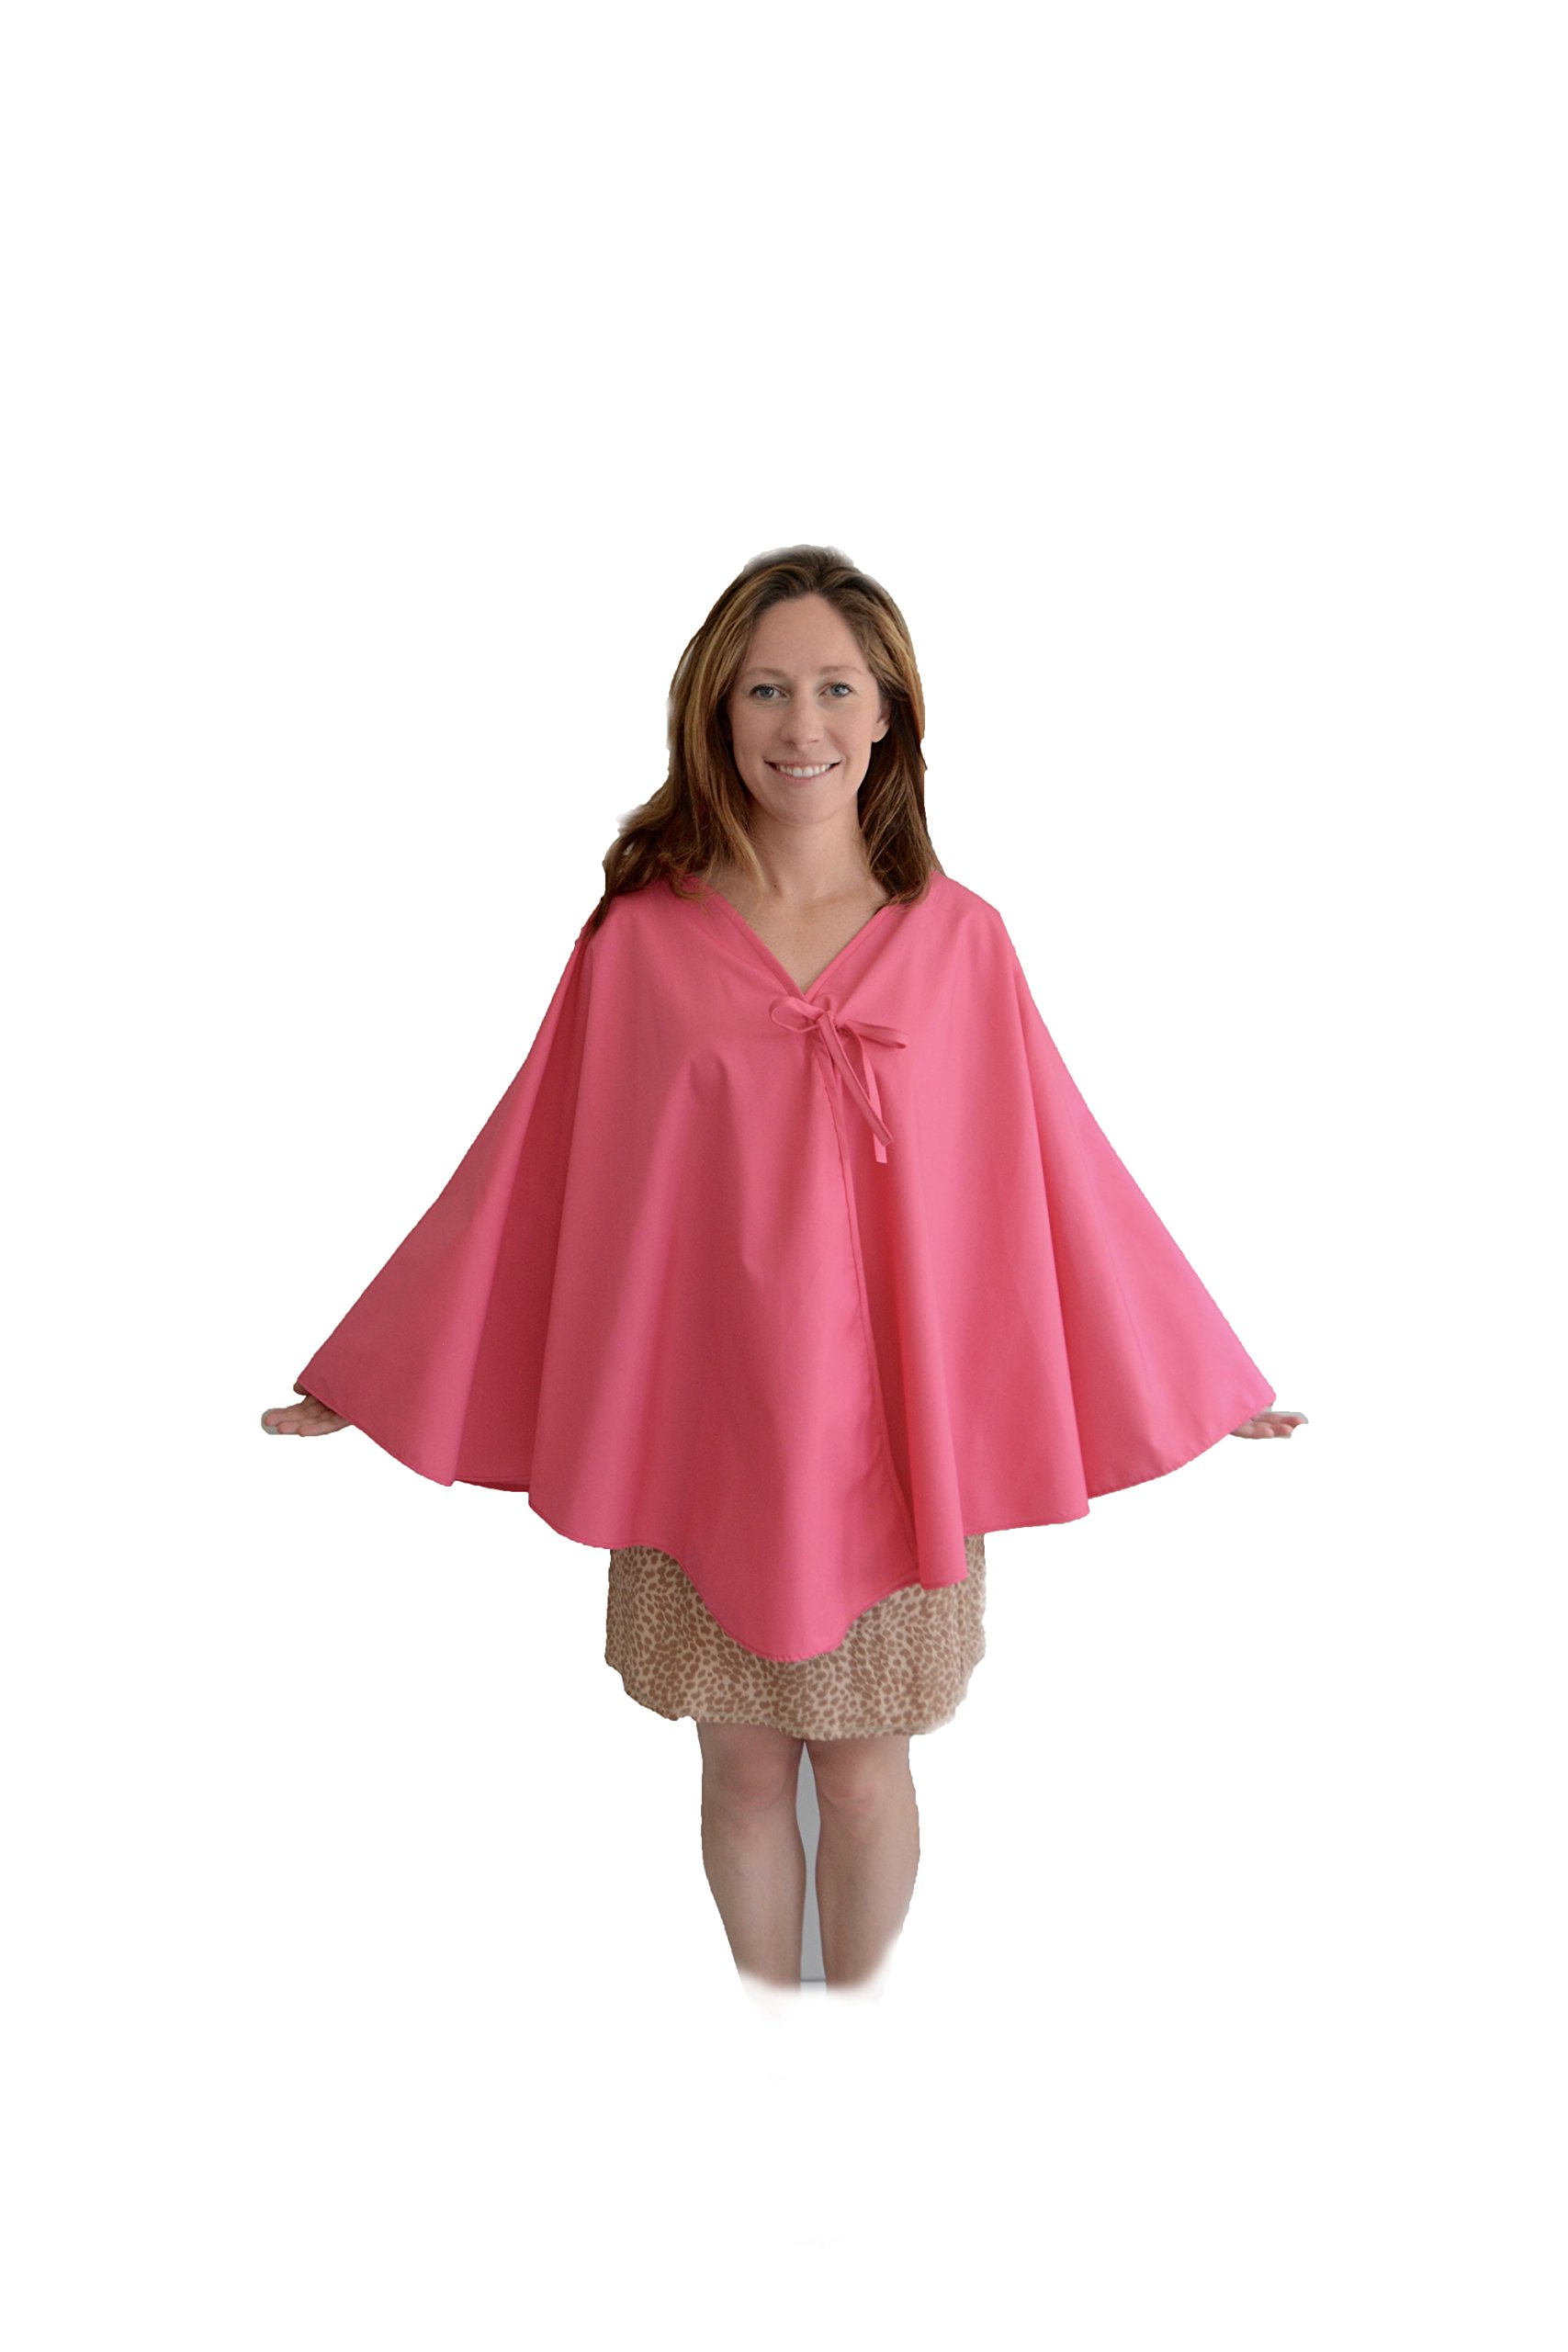 Health Gear - Mammography Exam Imaging Cape - Rose, One (6 piece pack)